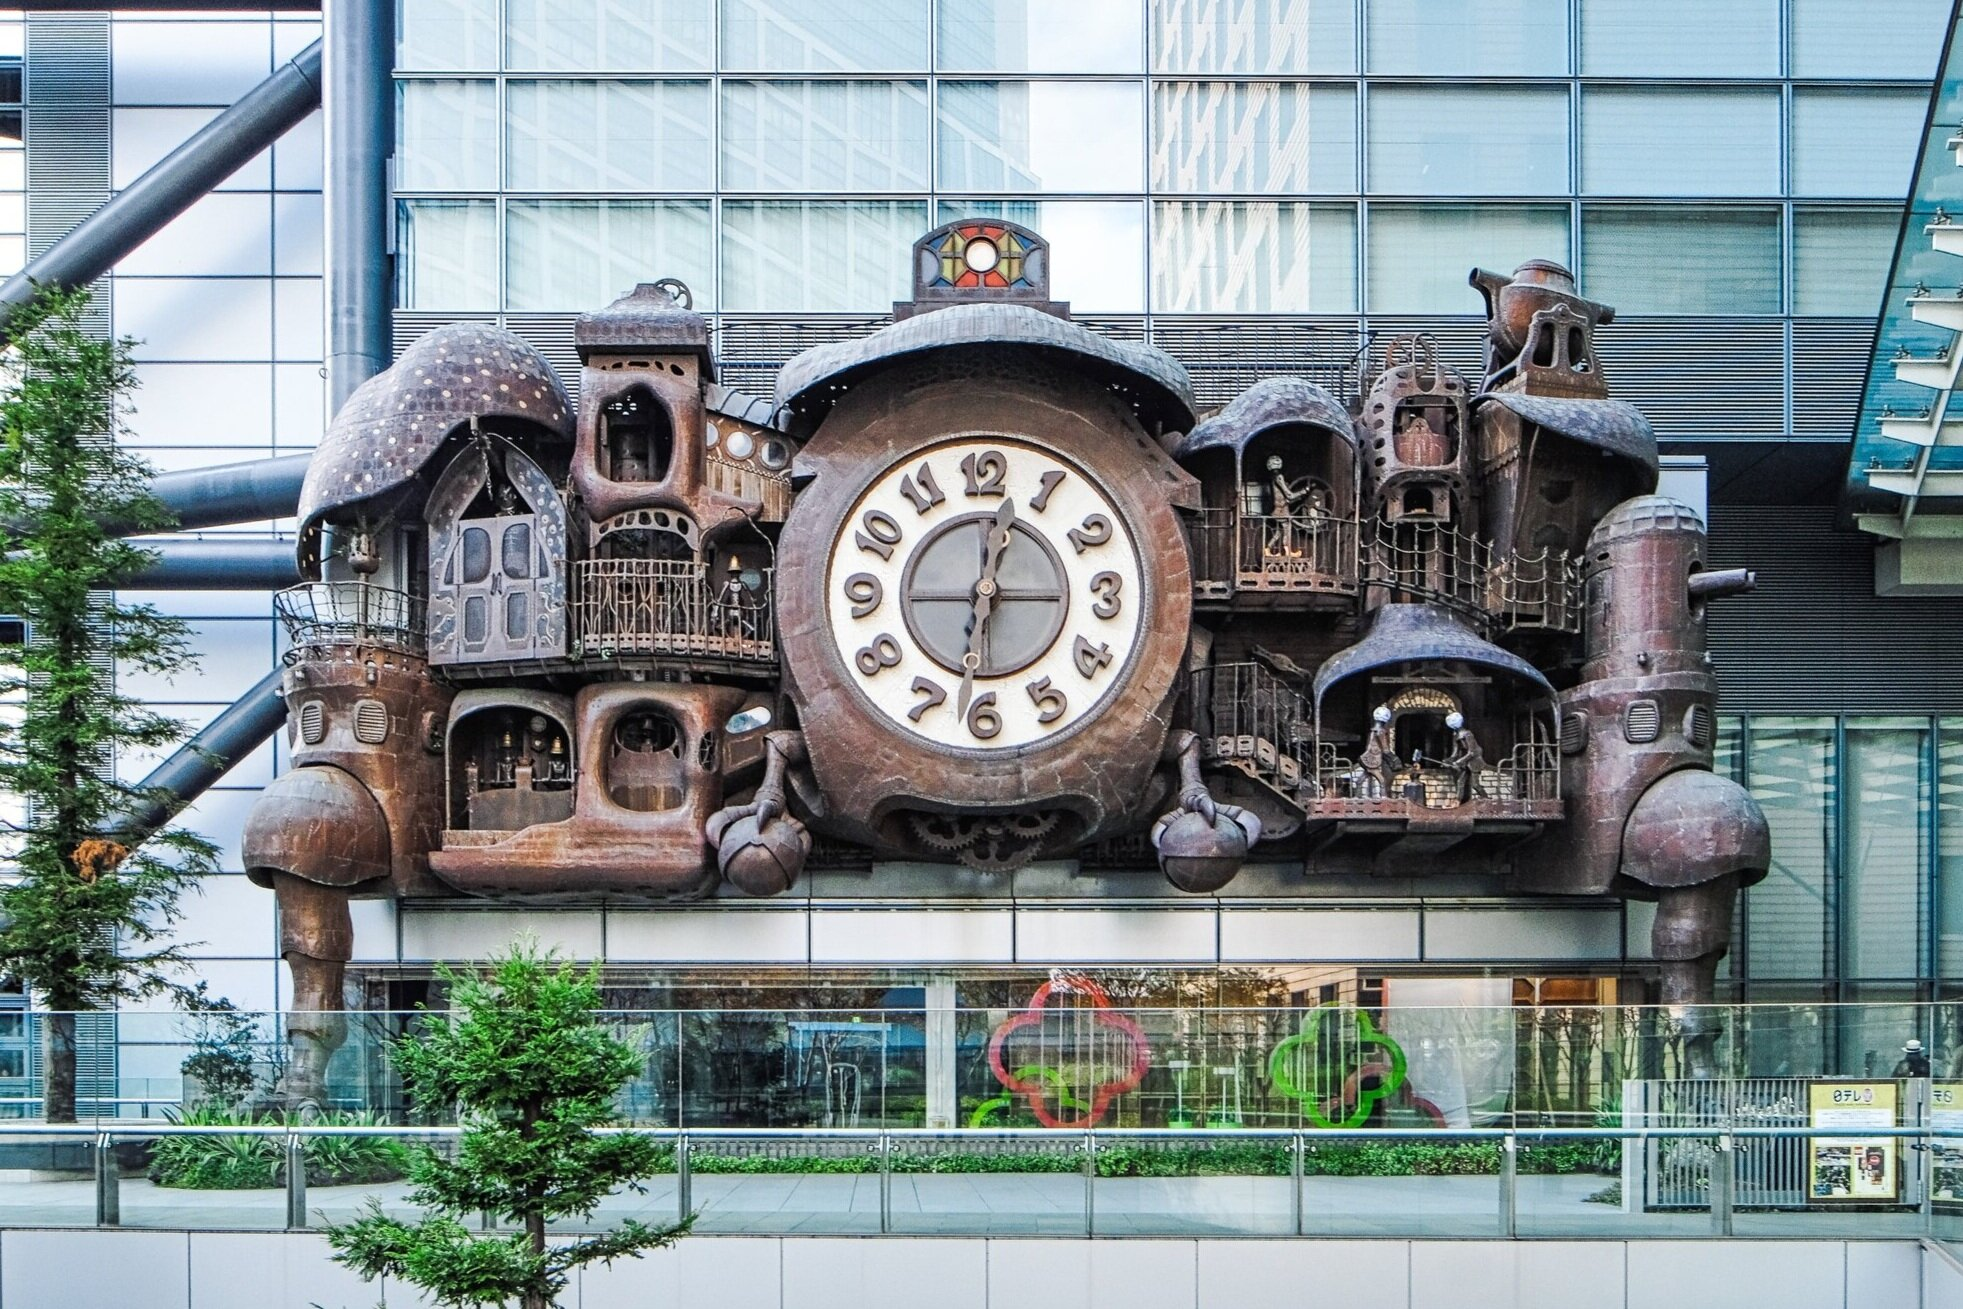 giant+ghibli+clock+in+tokyo+japan+instagram+photogenic+tokyo+photography+spots+secret+best+colorful+architecture